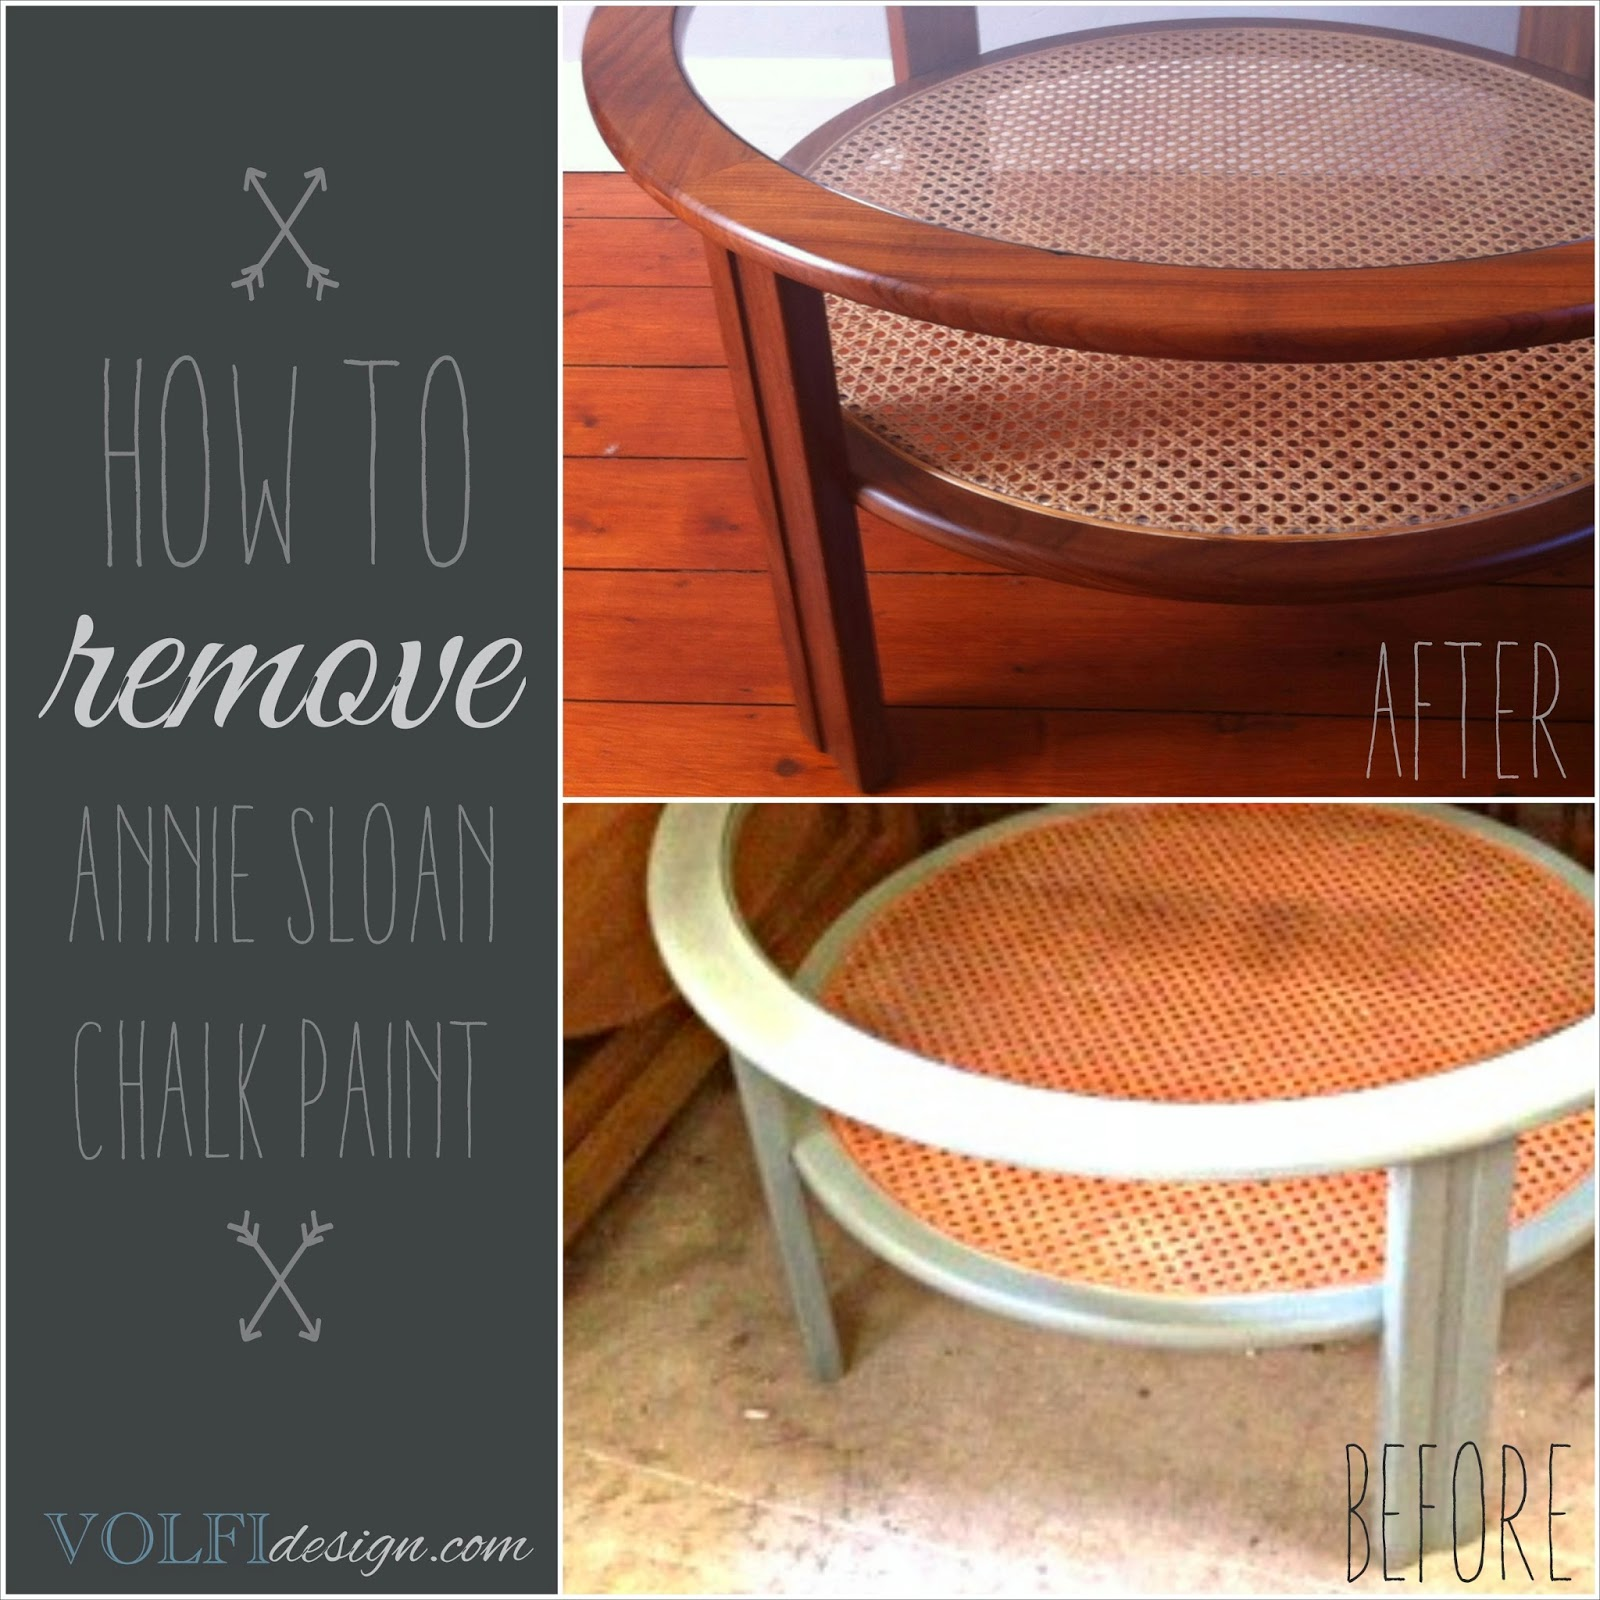 Volfidesign How To Remove Annie Sloan Chalk Paint